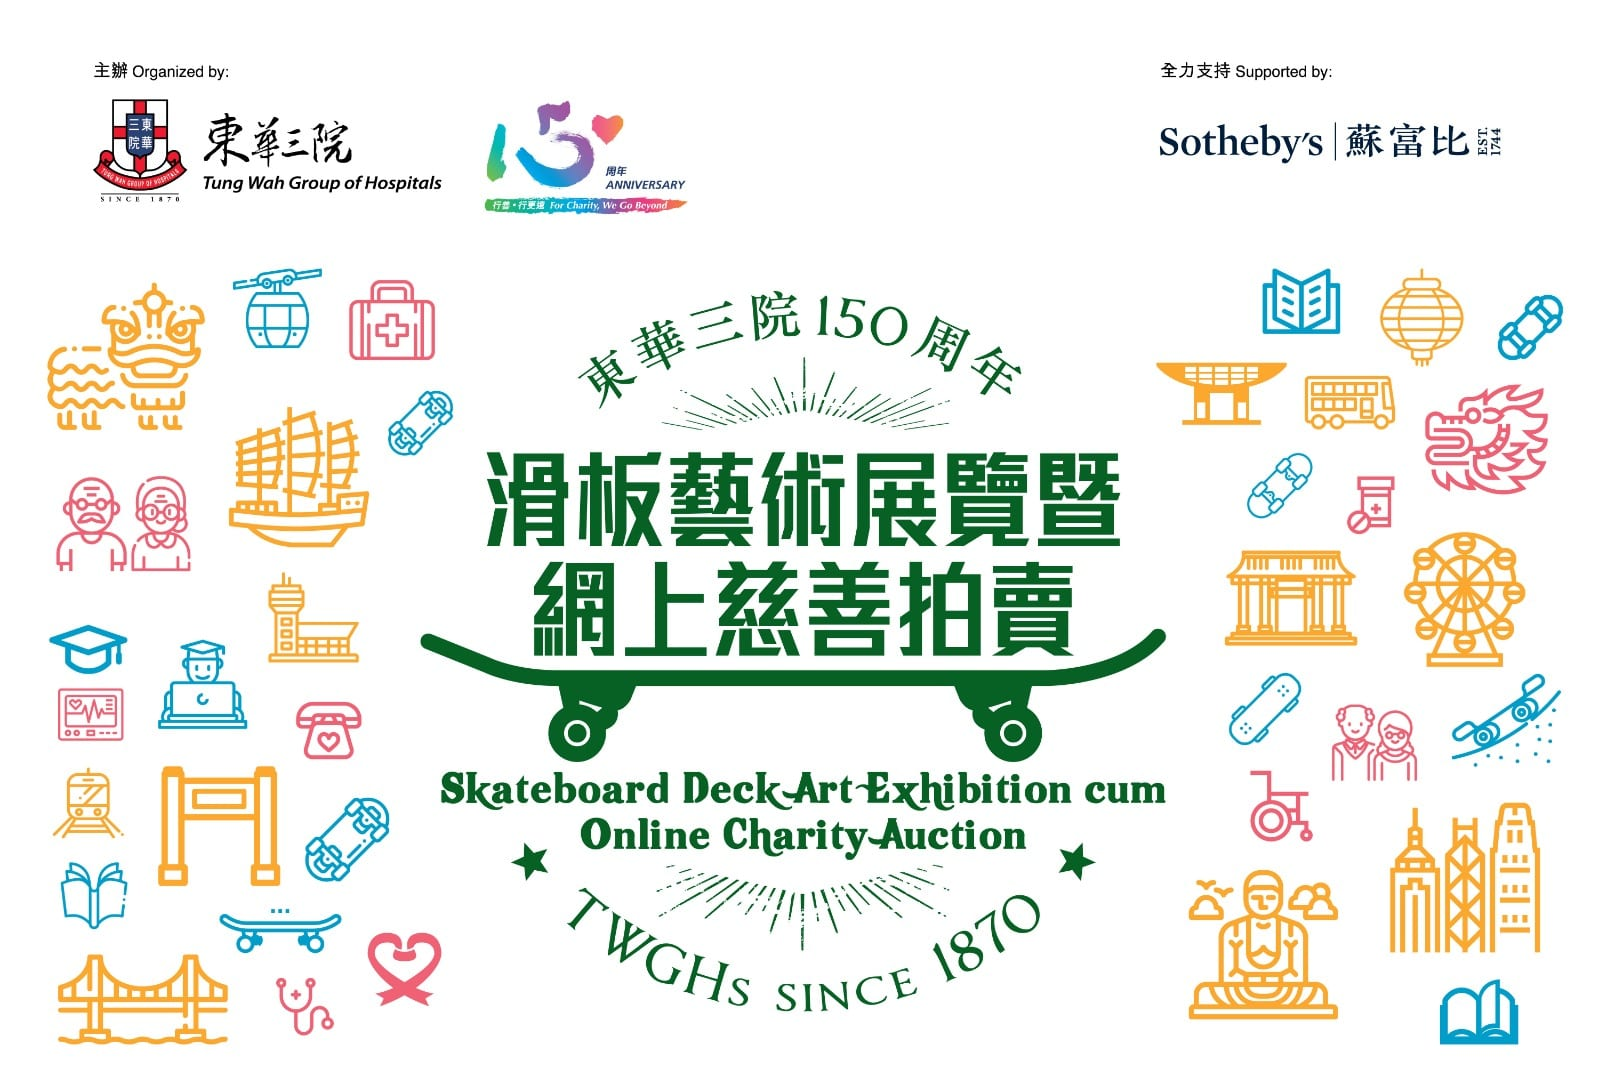 Tung Wah Group of Hospitals 150th Anniversary Skateboard Deck Art Exhibition cum Online Charity Auction